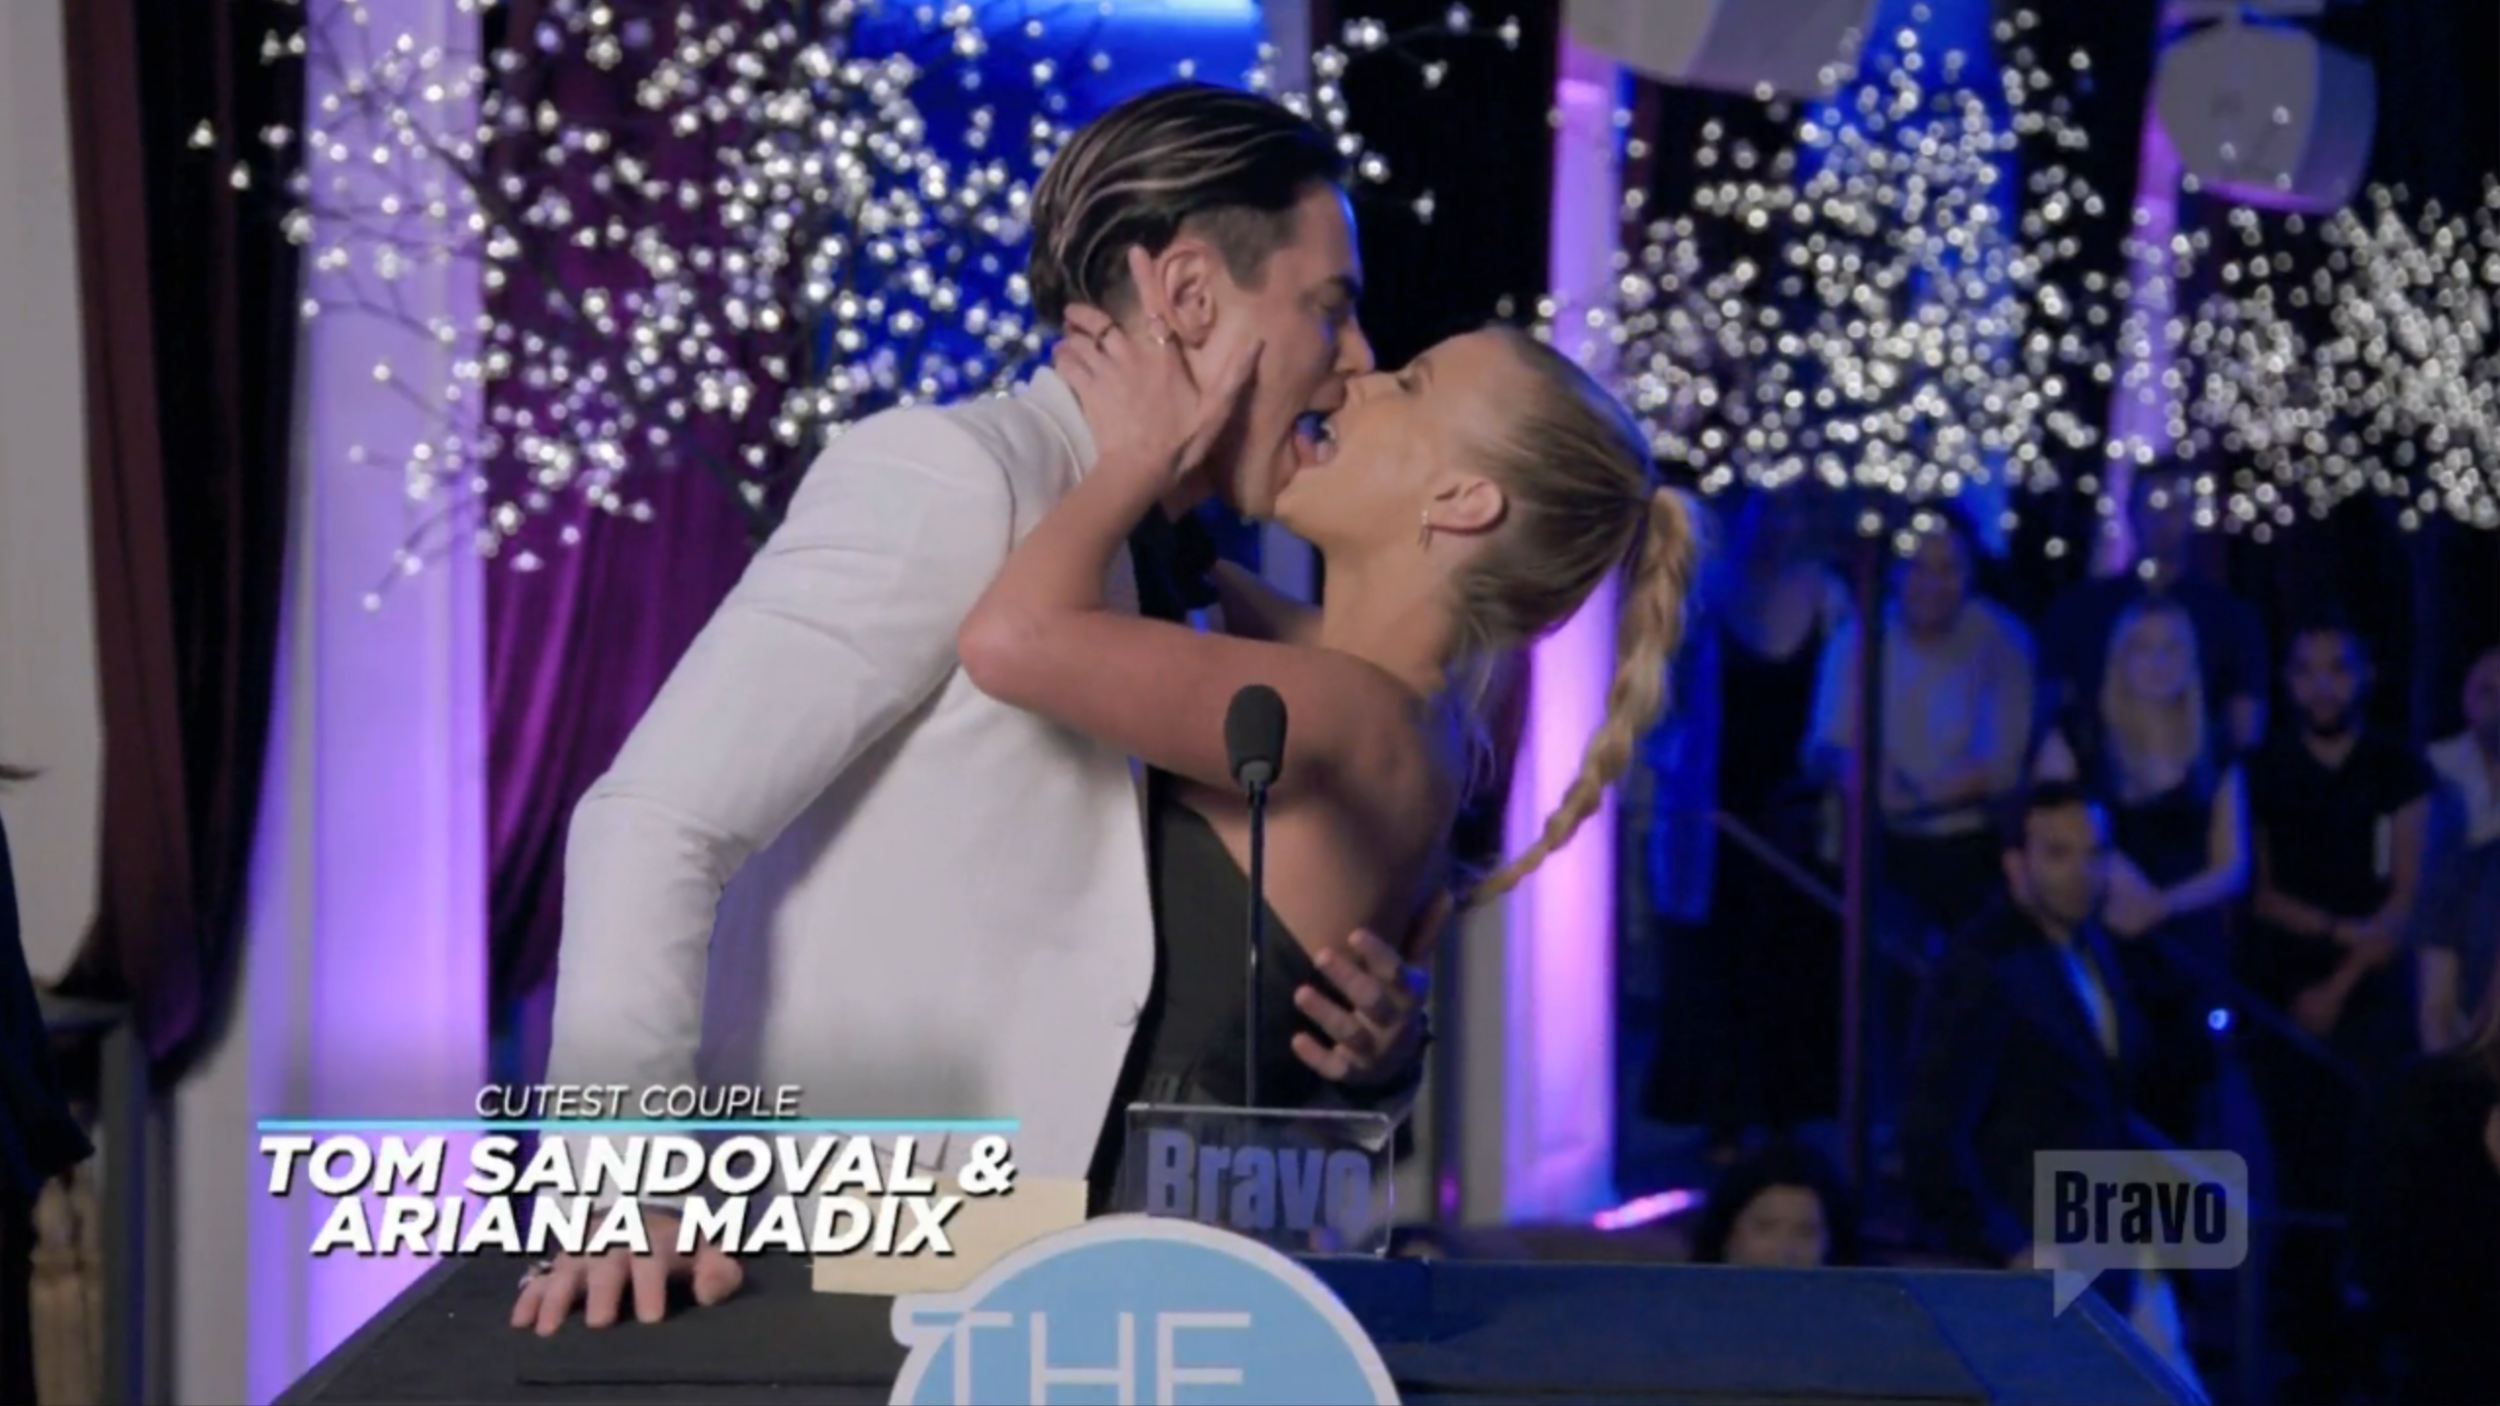 cutest-couple-tom-sandoval-ariana-madix